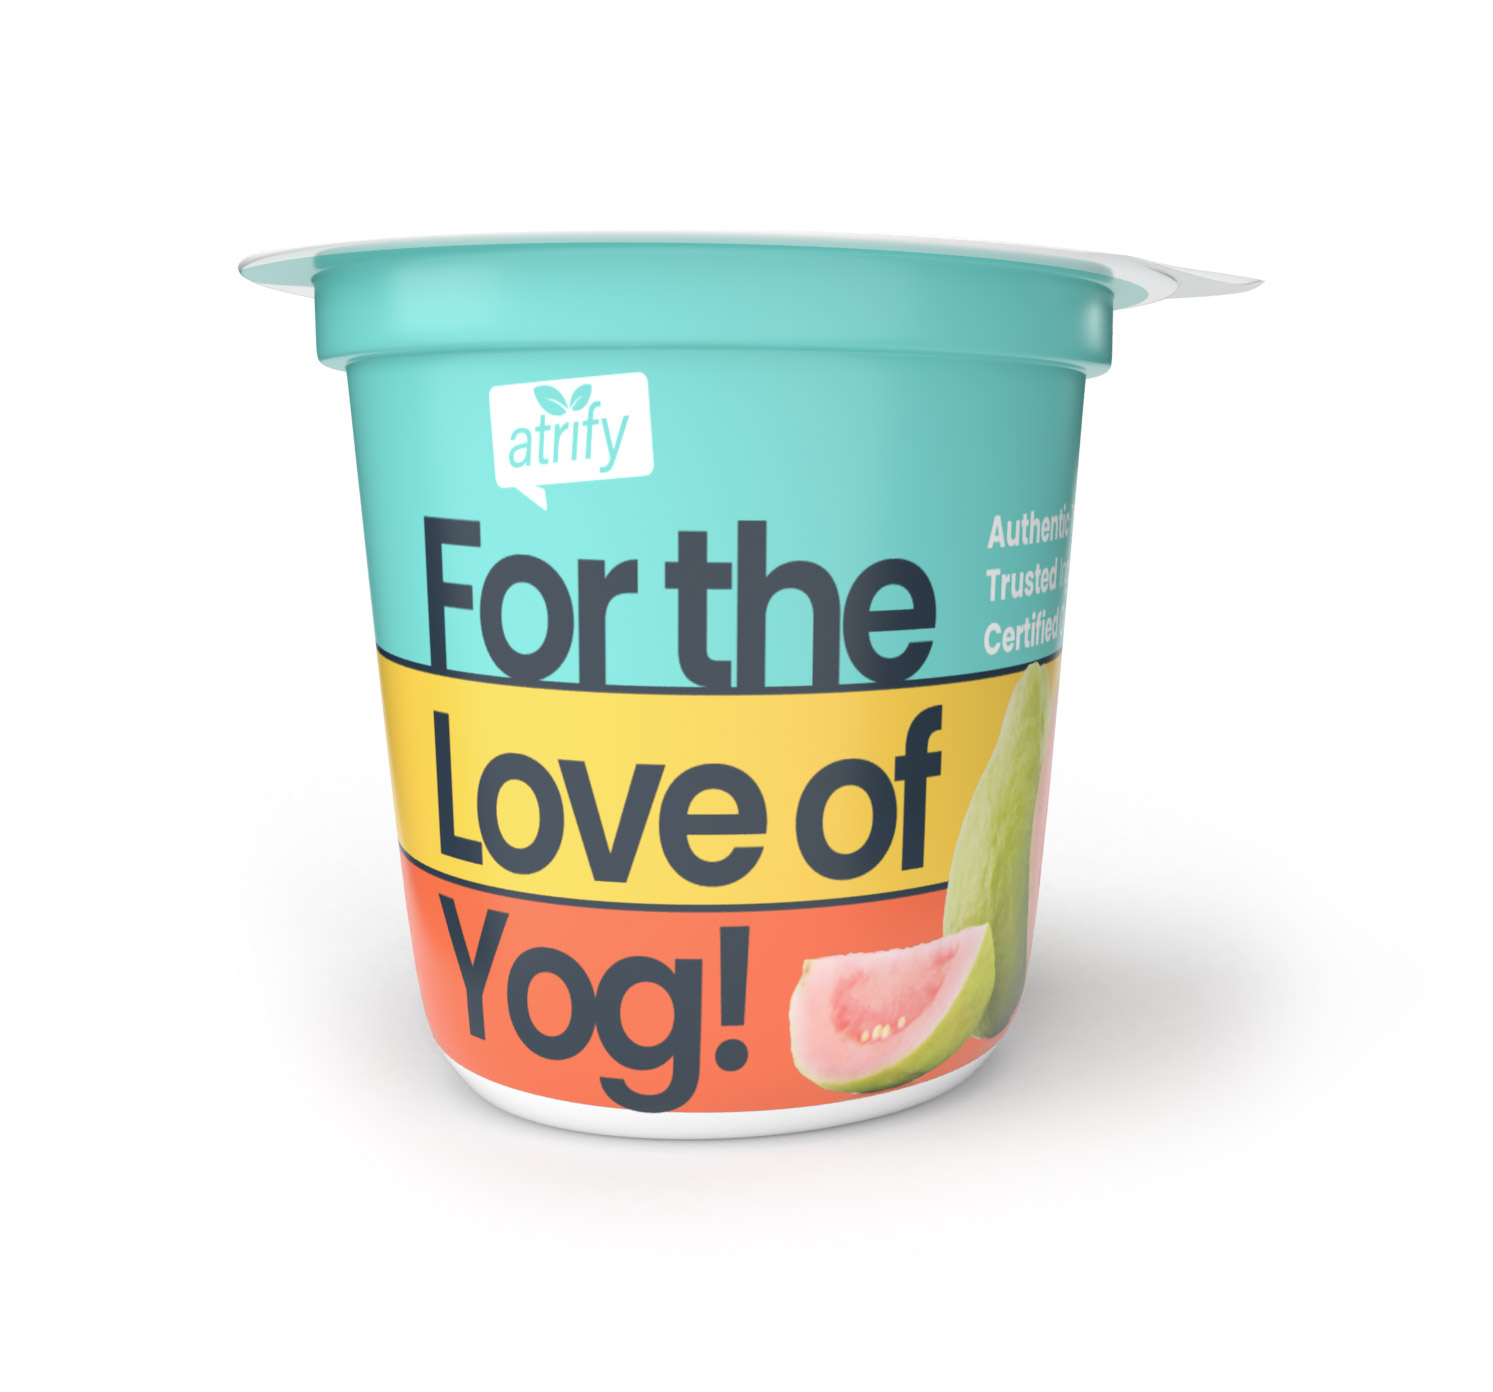 For the love of Yog